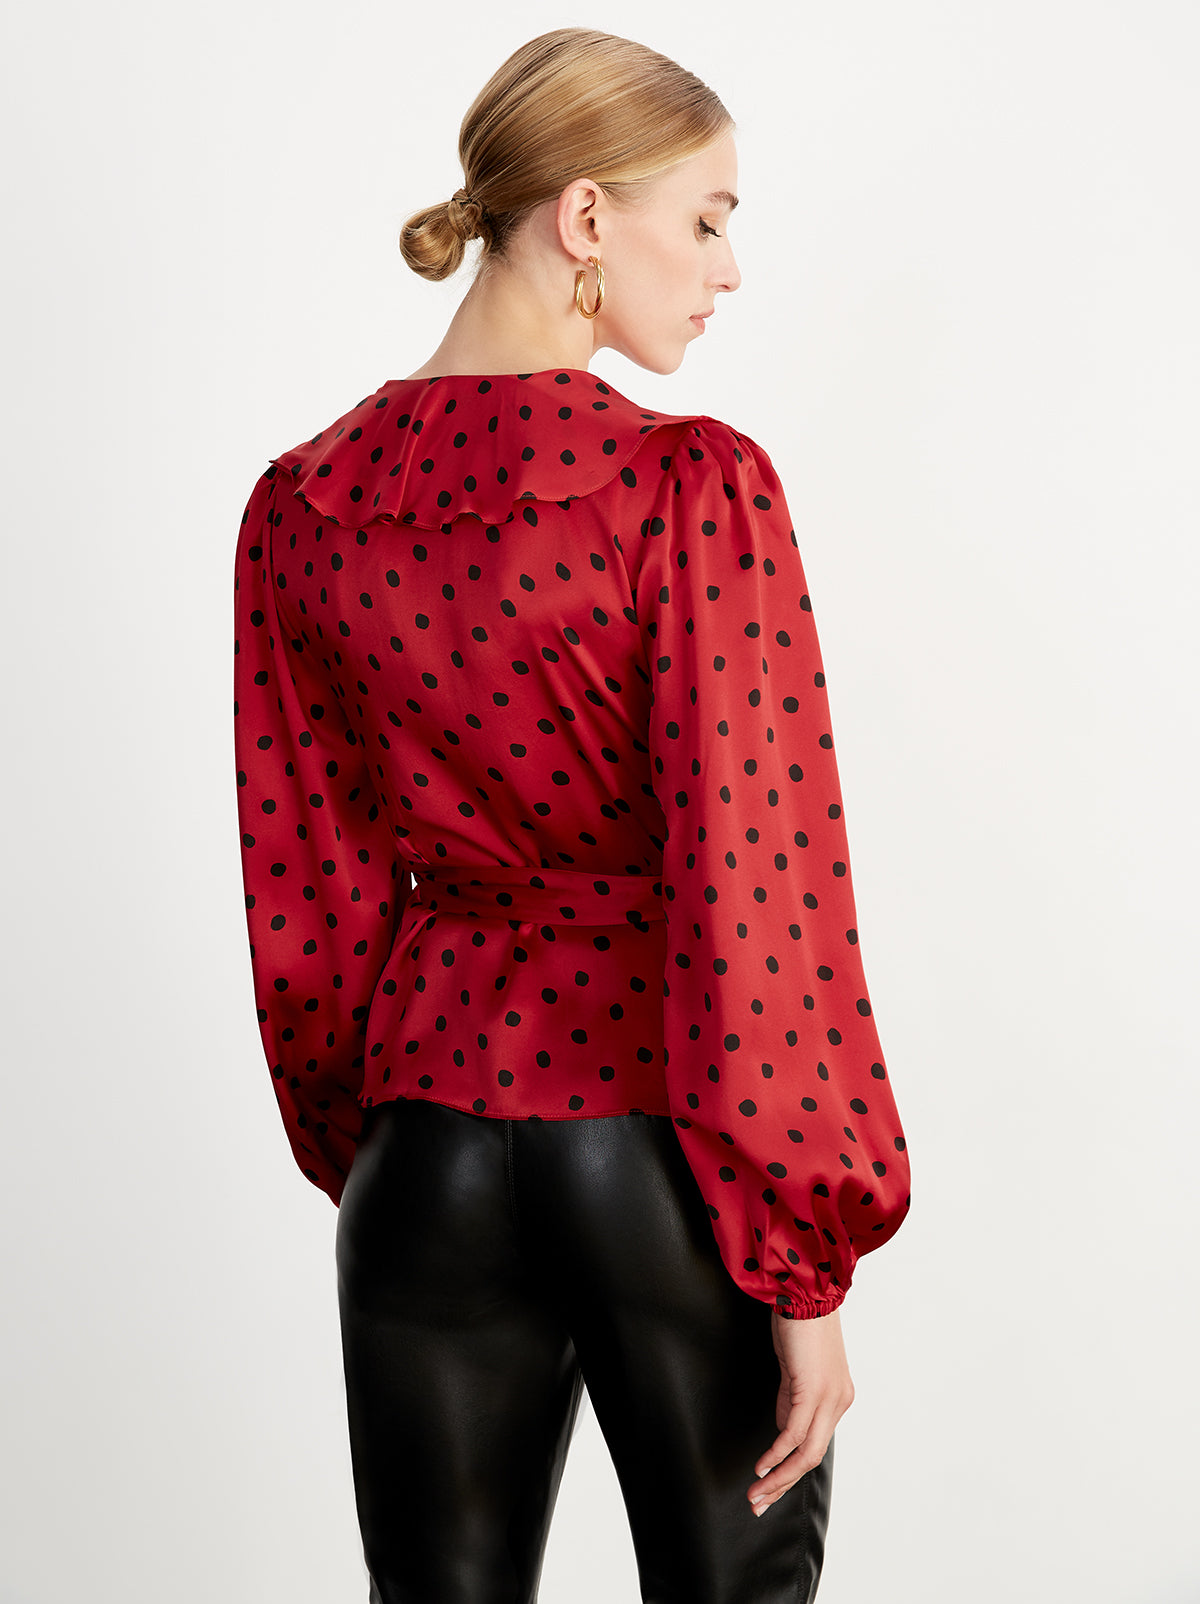 Esmeralda Red Polka Dot Wrap Blouse